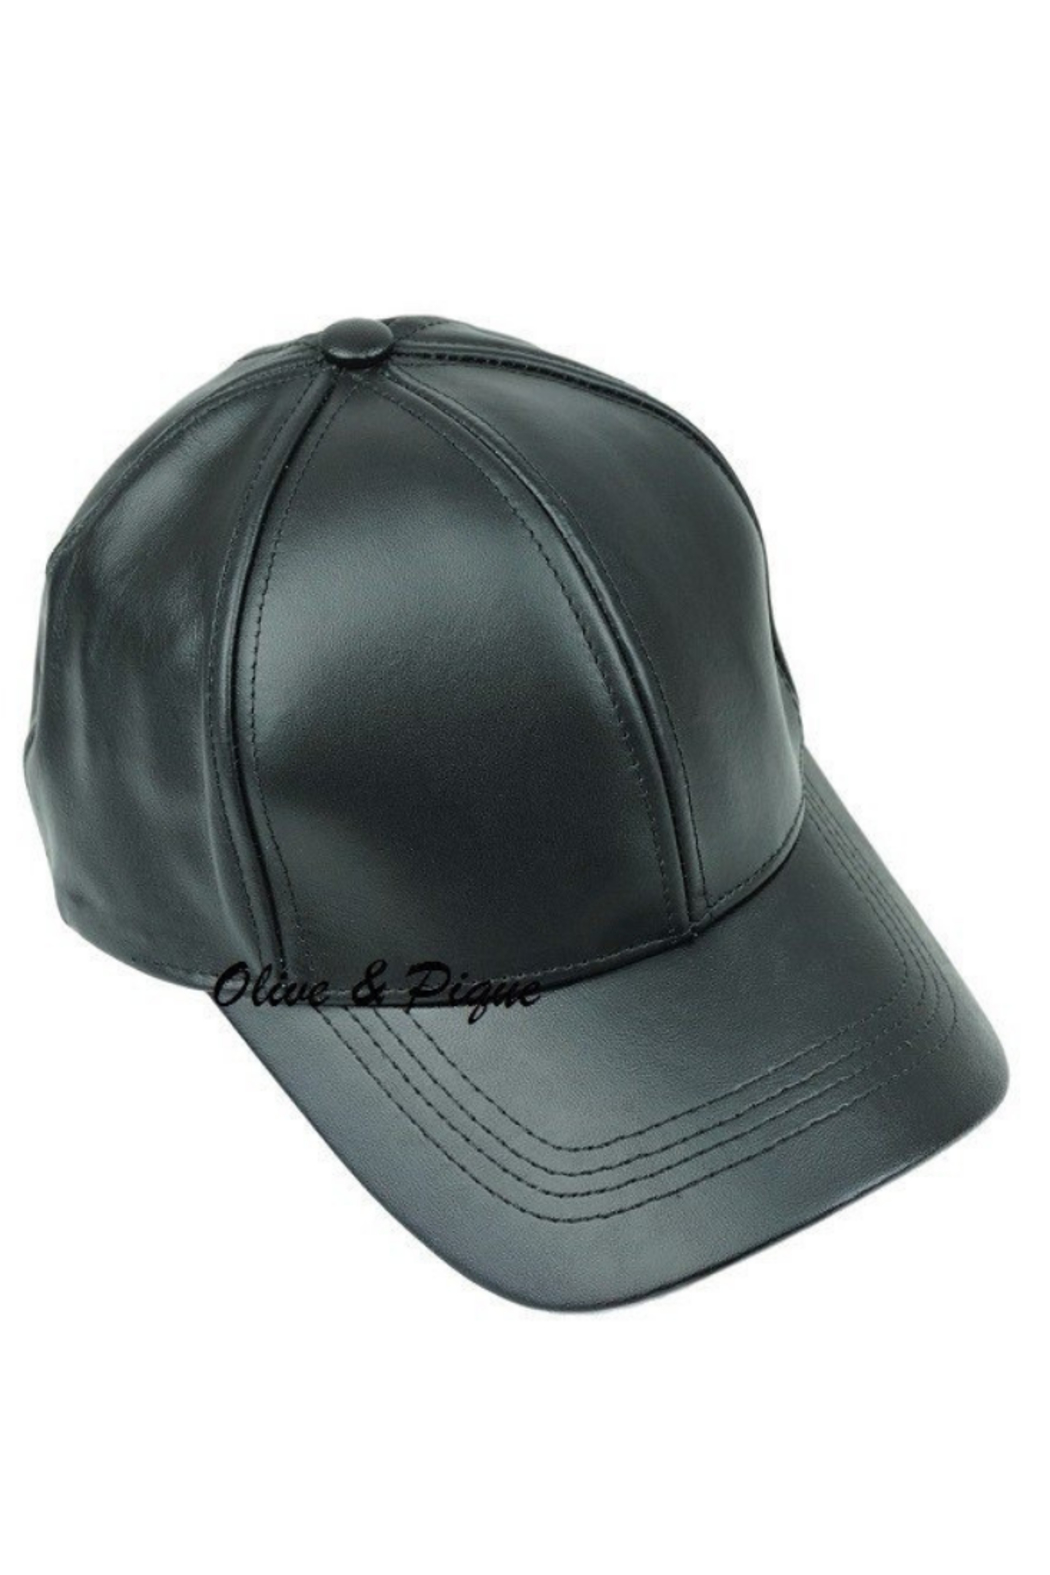 Olive & Pique Leather Baseball Cap - Main Image